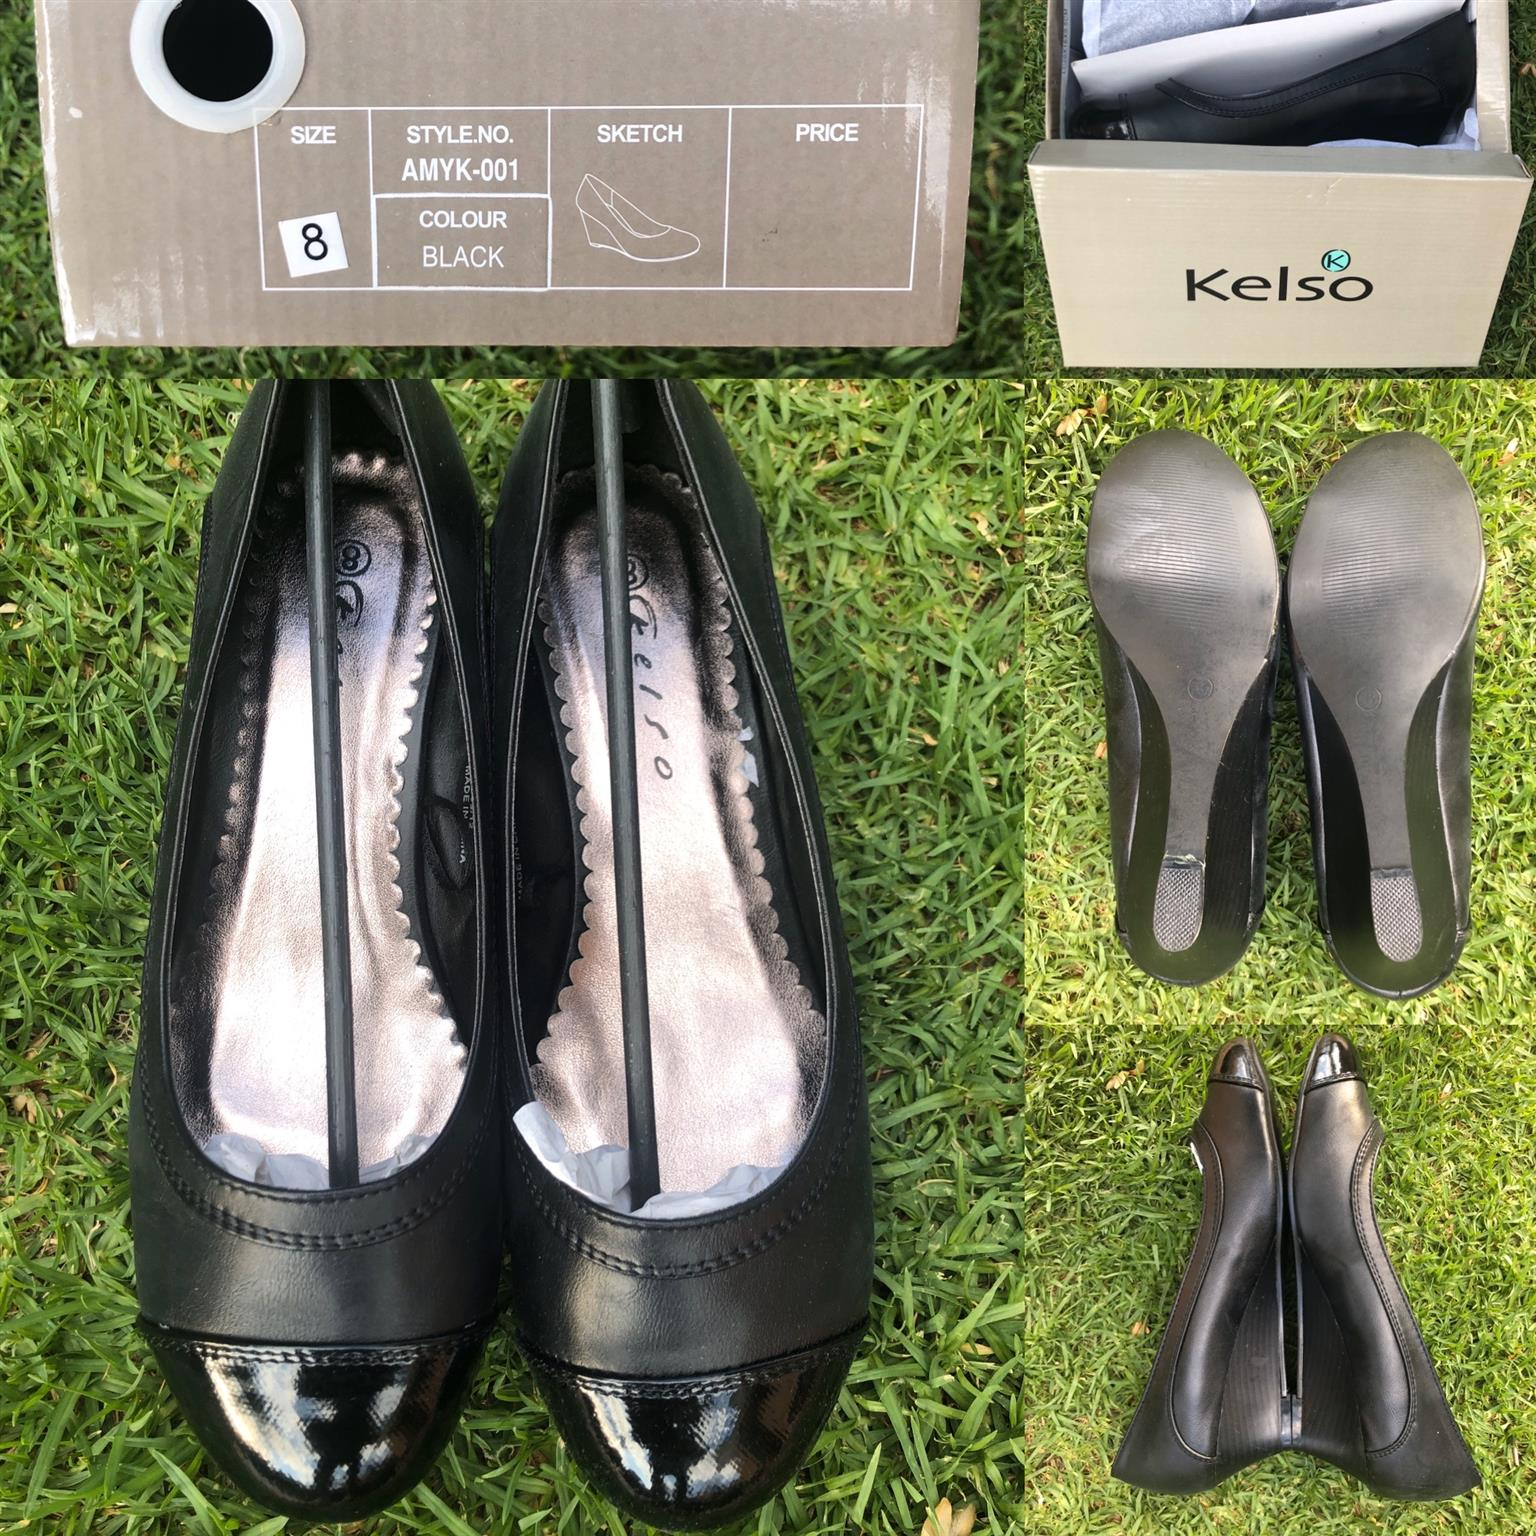 Kelso Ladies Smart Shoes - Size 8 only